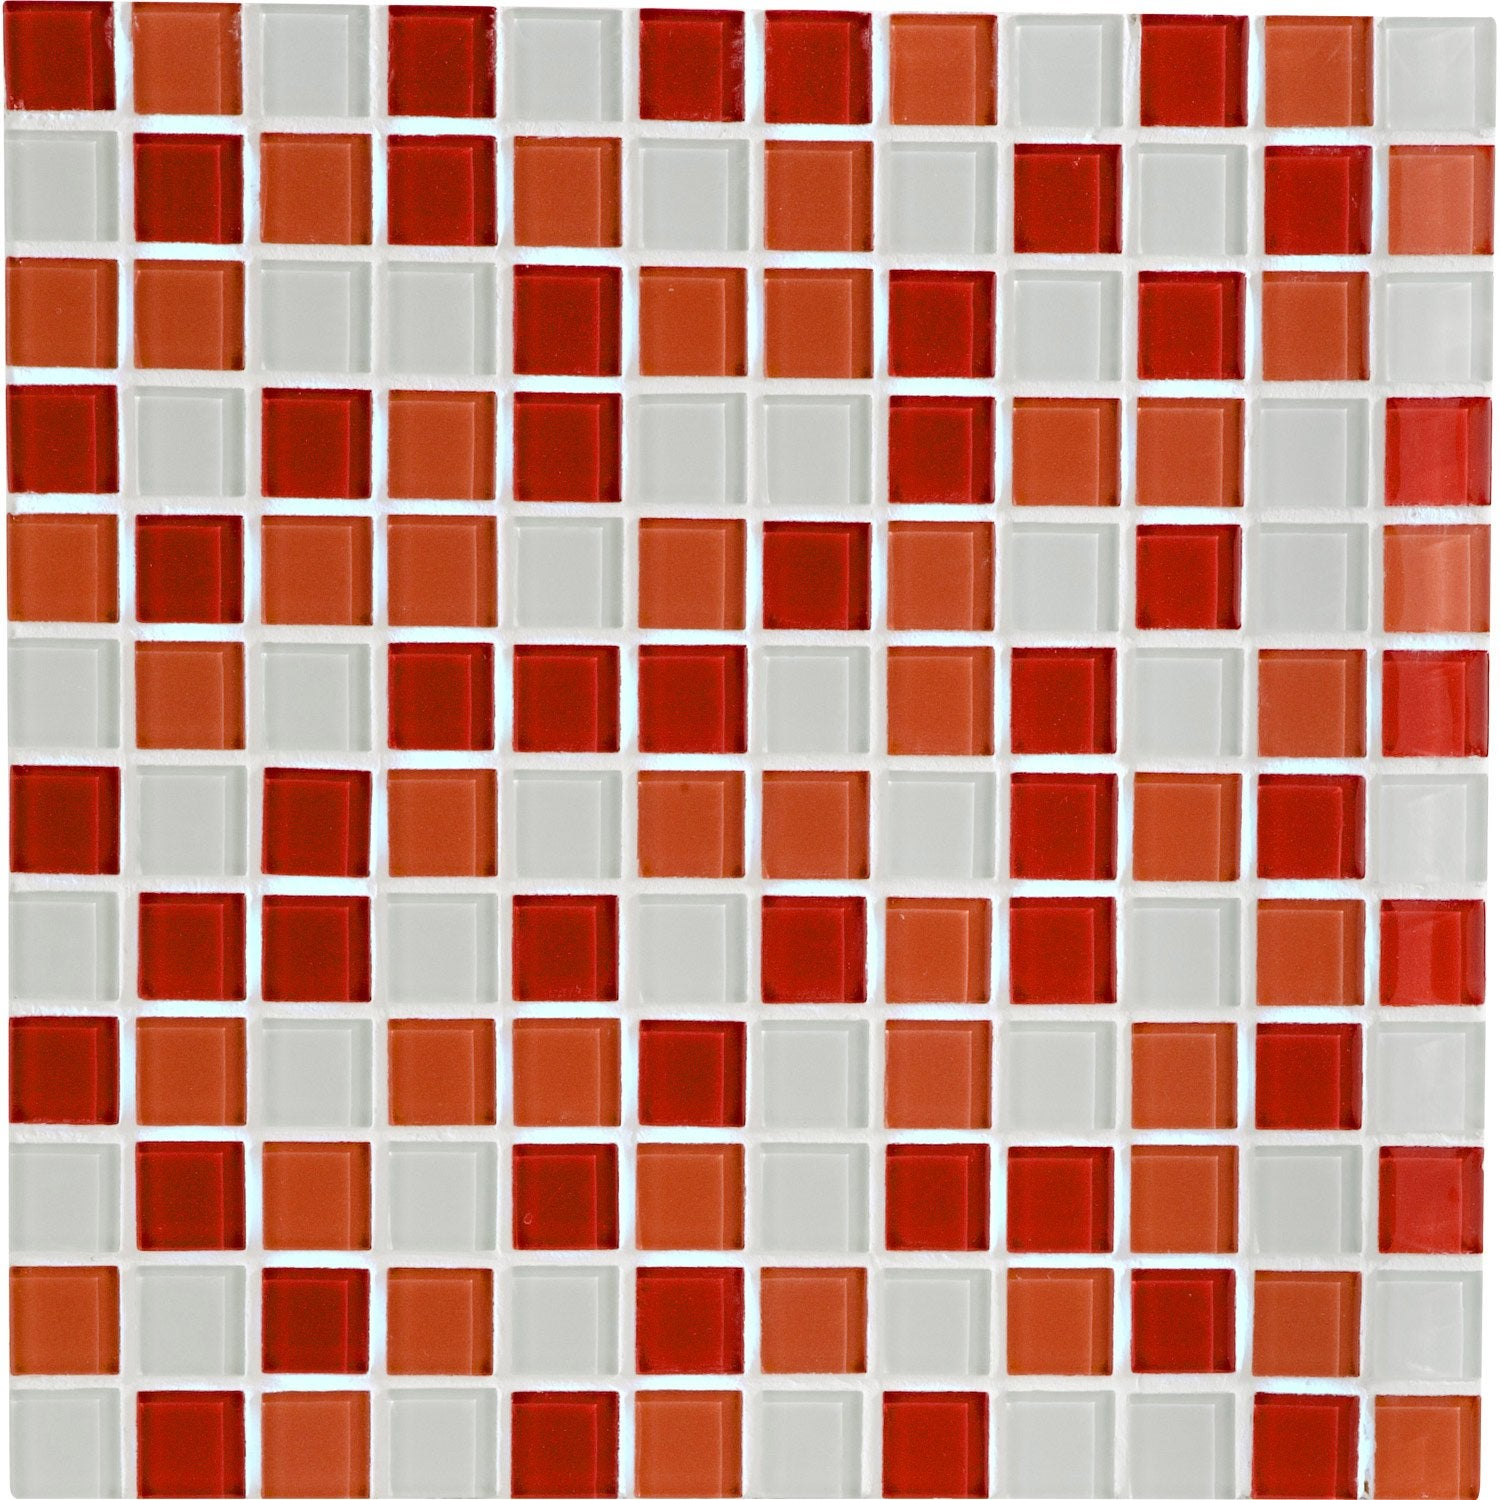 Mosa que mur shaker mix rouge leroy merlin for Tapis de cuisine mosaique